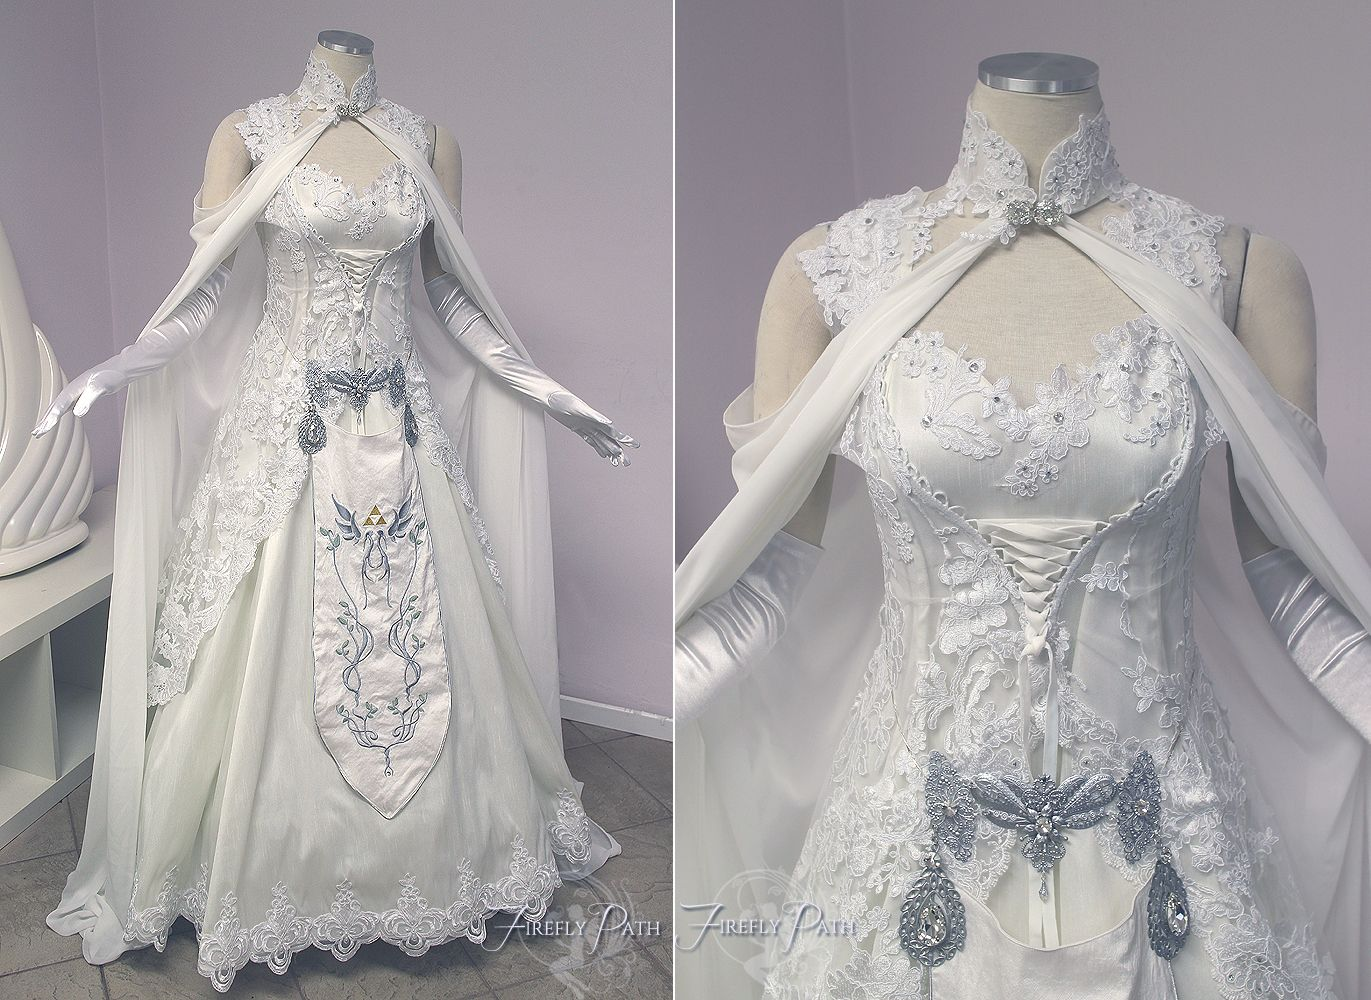 White apron gainesville fl -  Gown We Created For Our Bridal Customer Elizabeth A Crystal Clasp Closes The Collar Cape In Front The Hylian Crest Is Embroidered On A Silk Apron